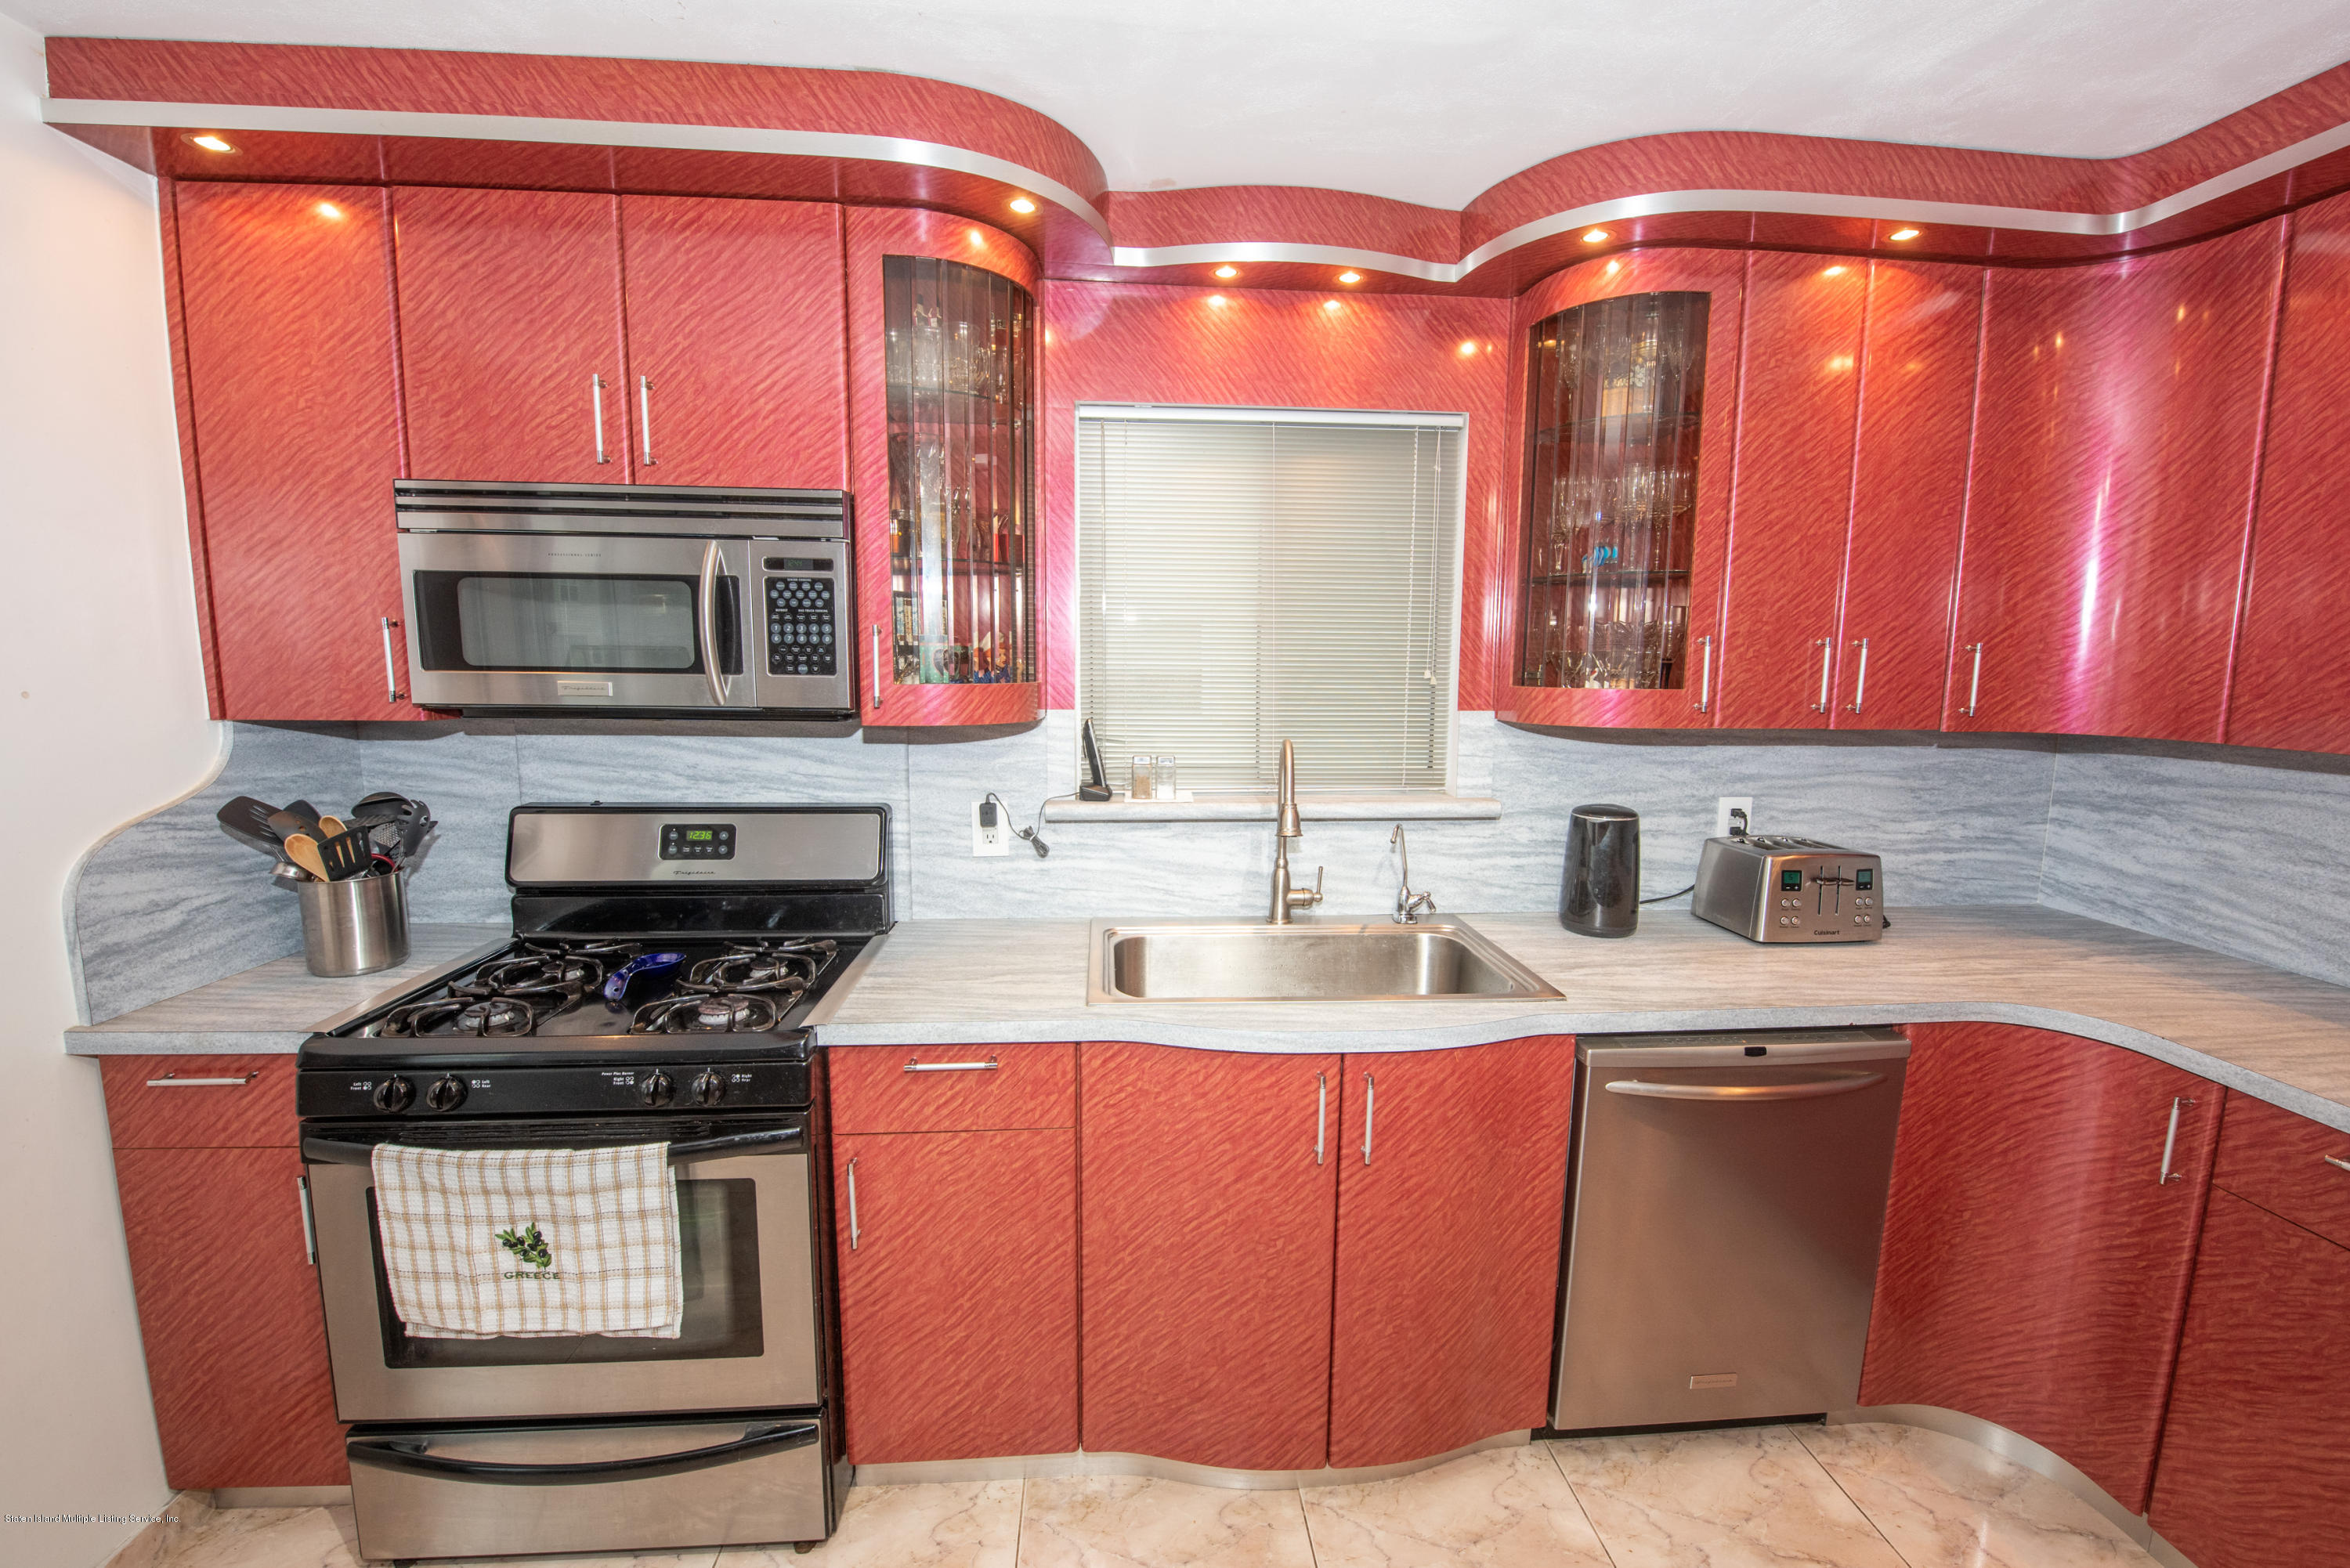 Single Family - Semi-Attached 76 Mcveigh Avenue  Staten Island, NY 10314, MLS-1133370-13